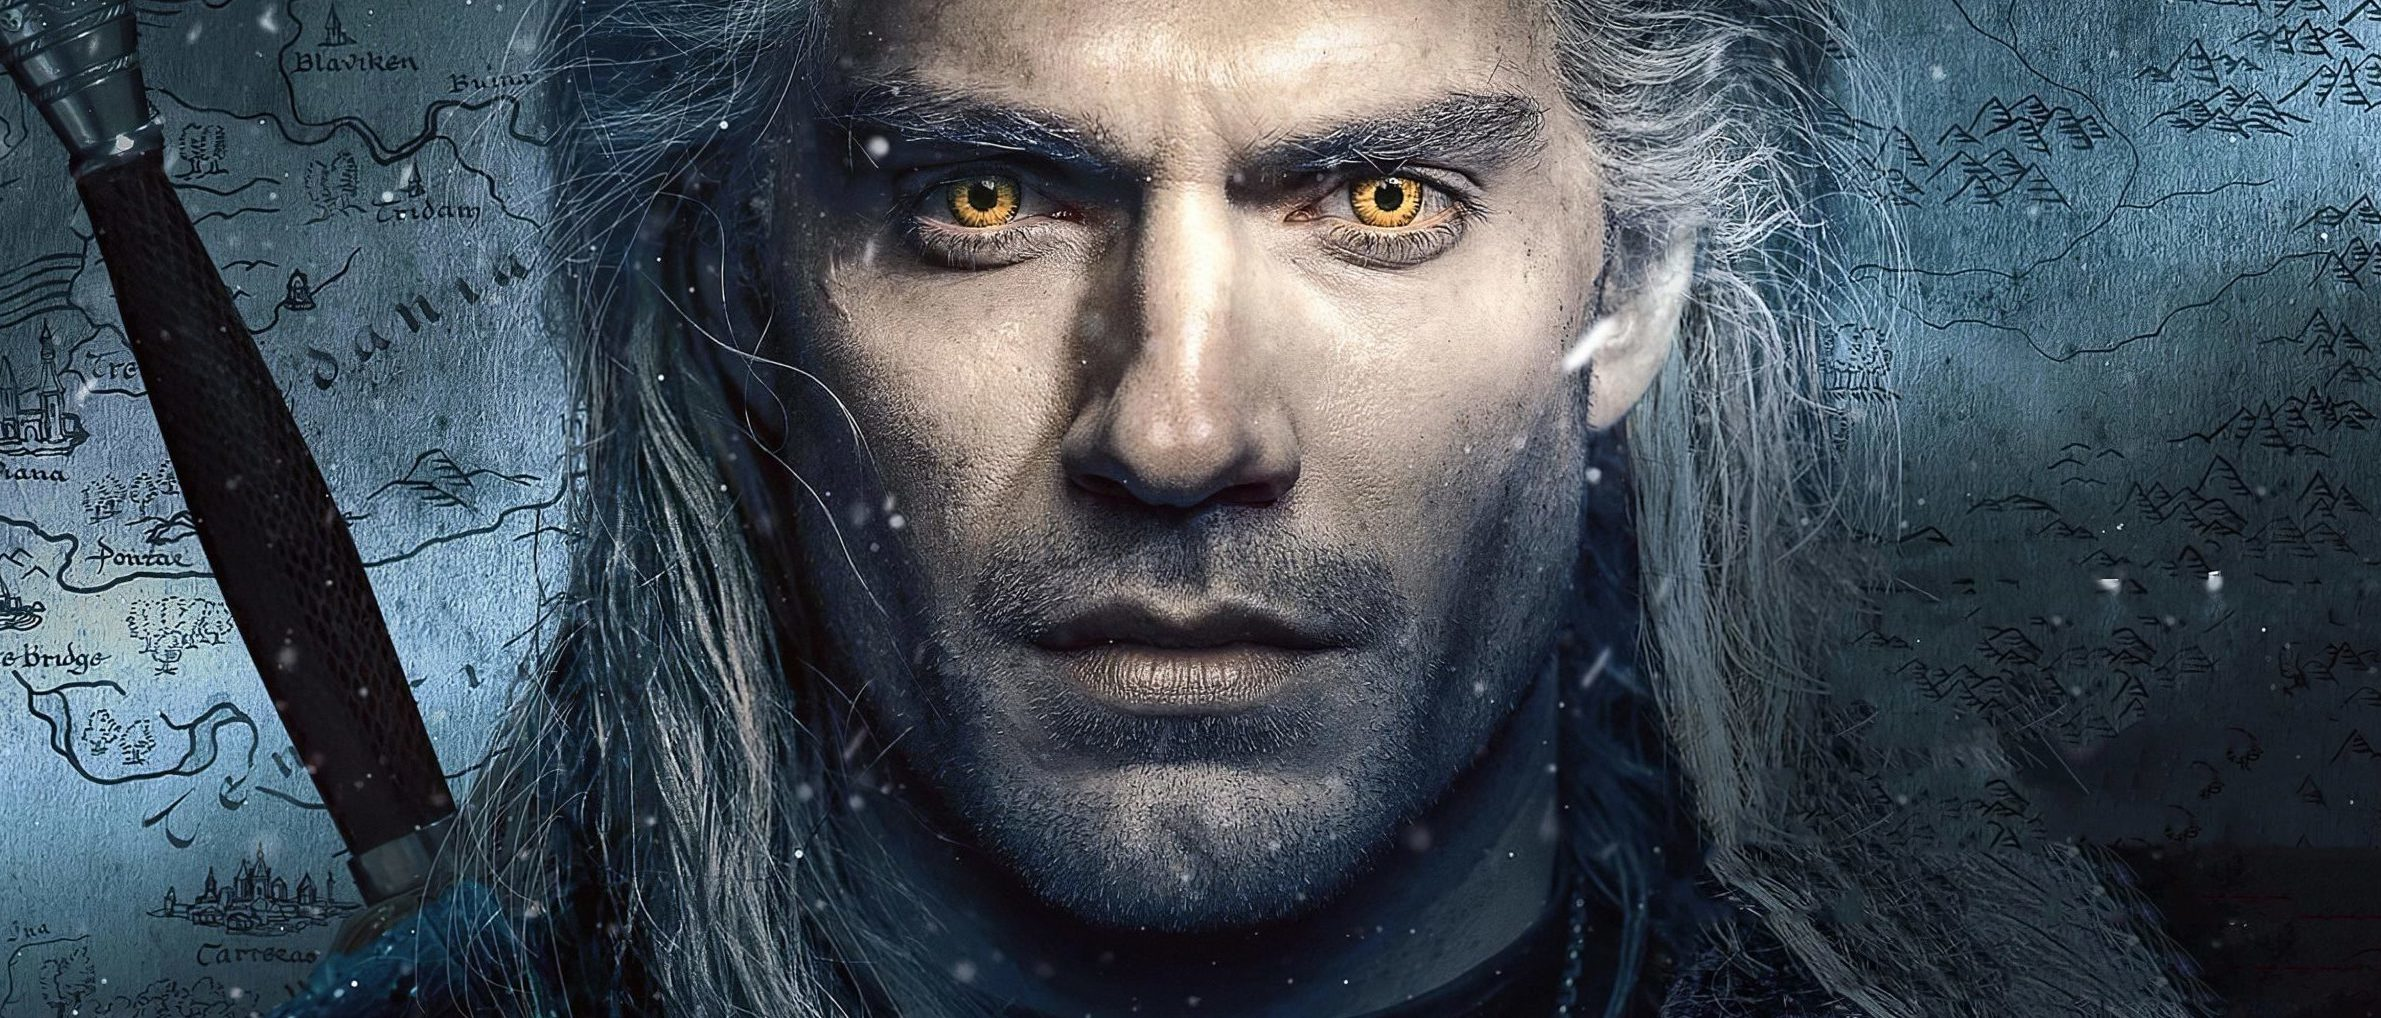 The Witcher Season 1 Henry Cavill Netflix Season 2